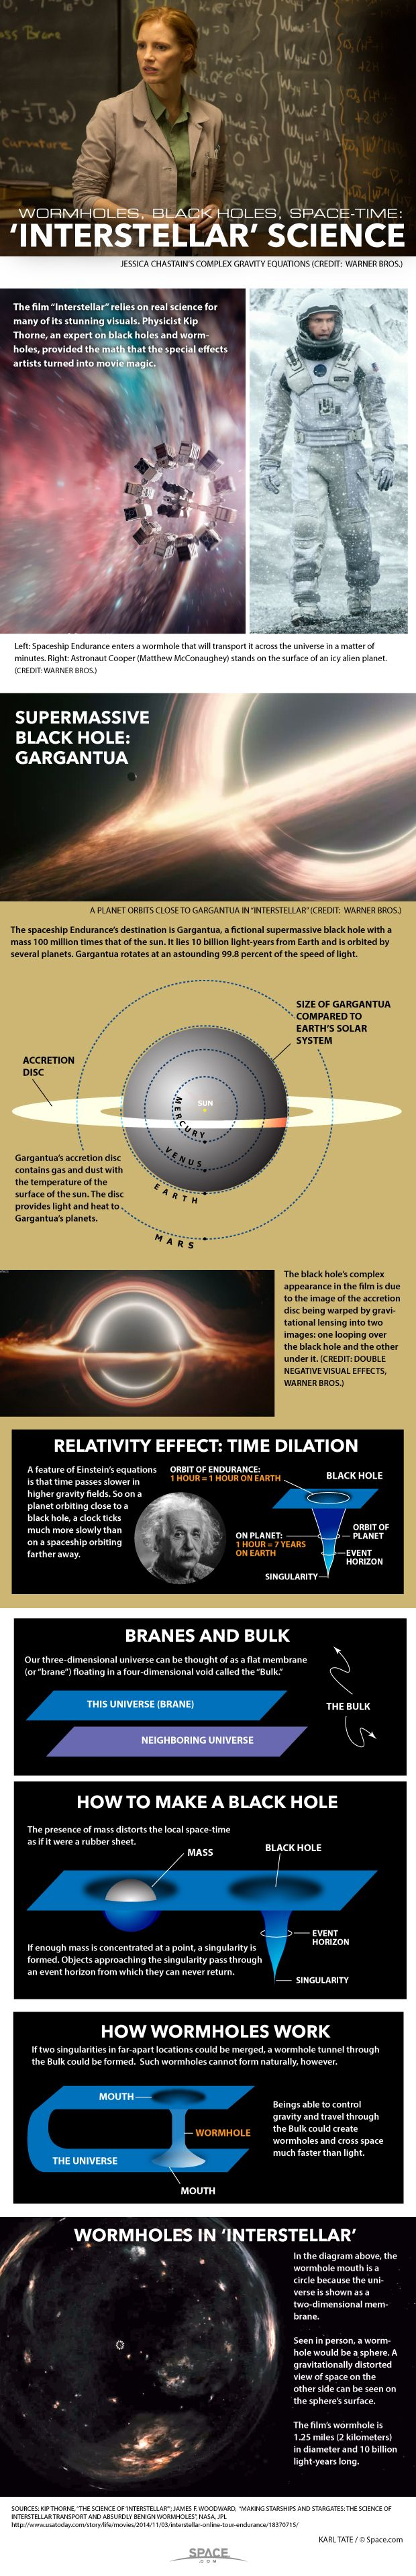 Wormhole travel across the universe and supergiant black holes are just some of the wonders seen in the film 'Interstellar.' See how the film's astrophysics works in this Space.com infographic.